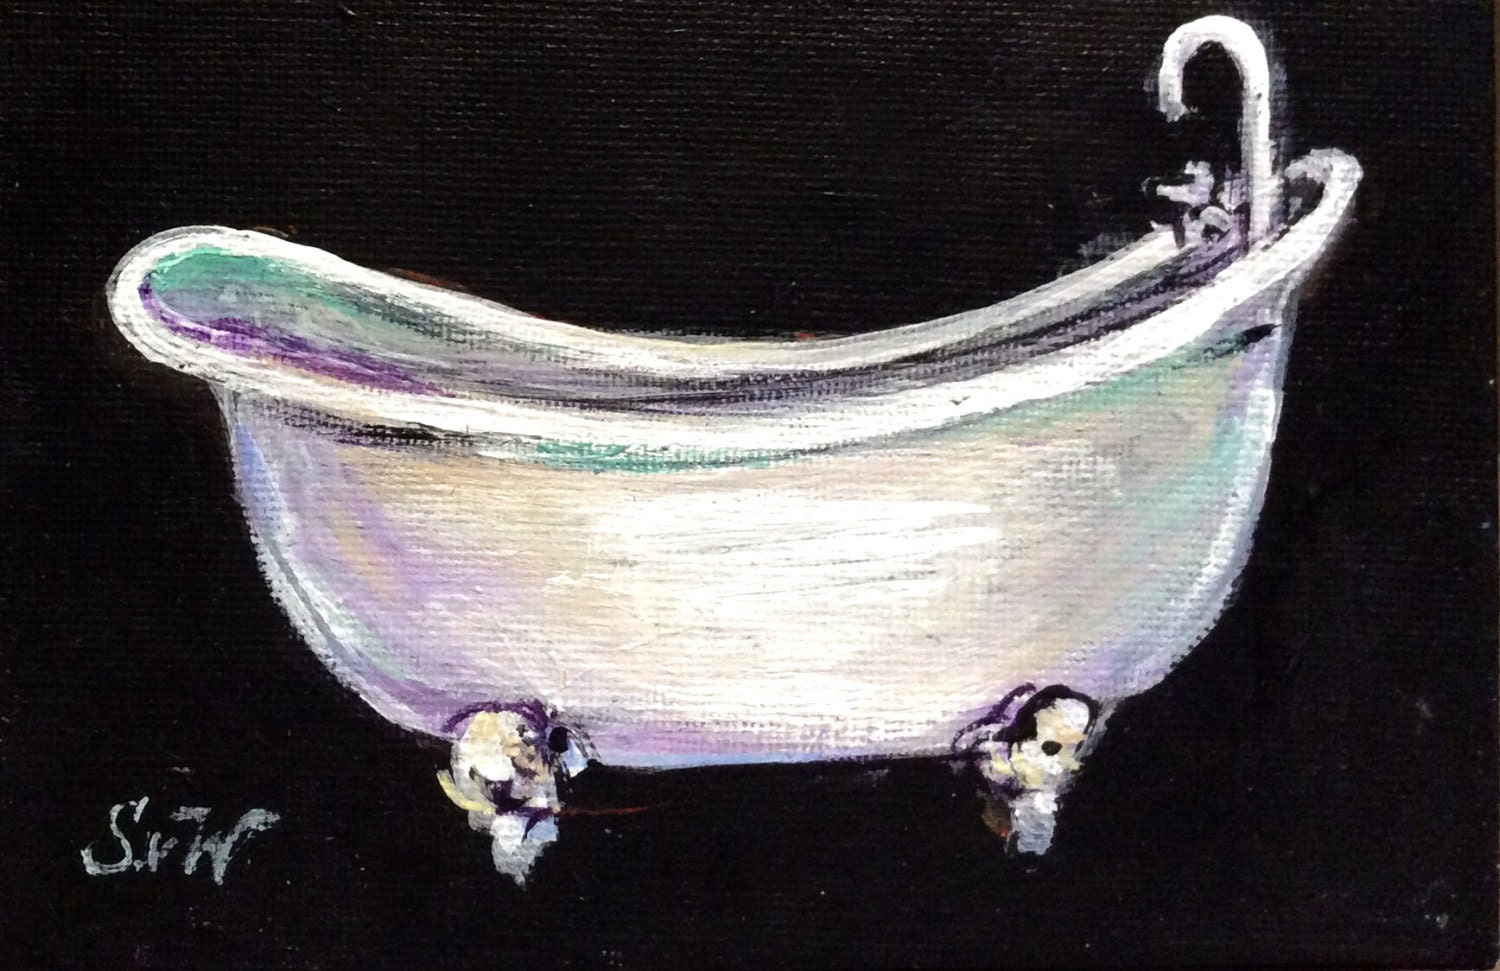 Clawfoot bathtub painting white bathtub art by sersonart on etsy - Painted clawfoot tub exterior pict ...